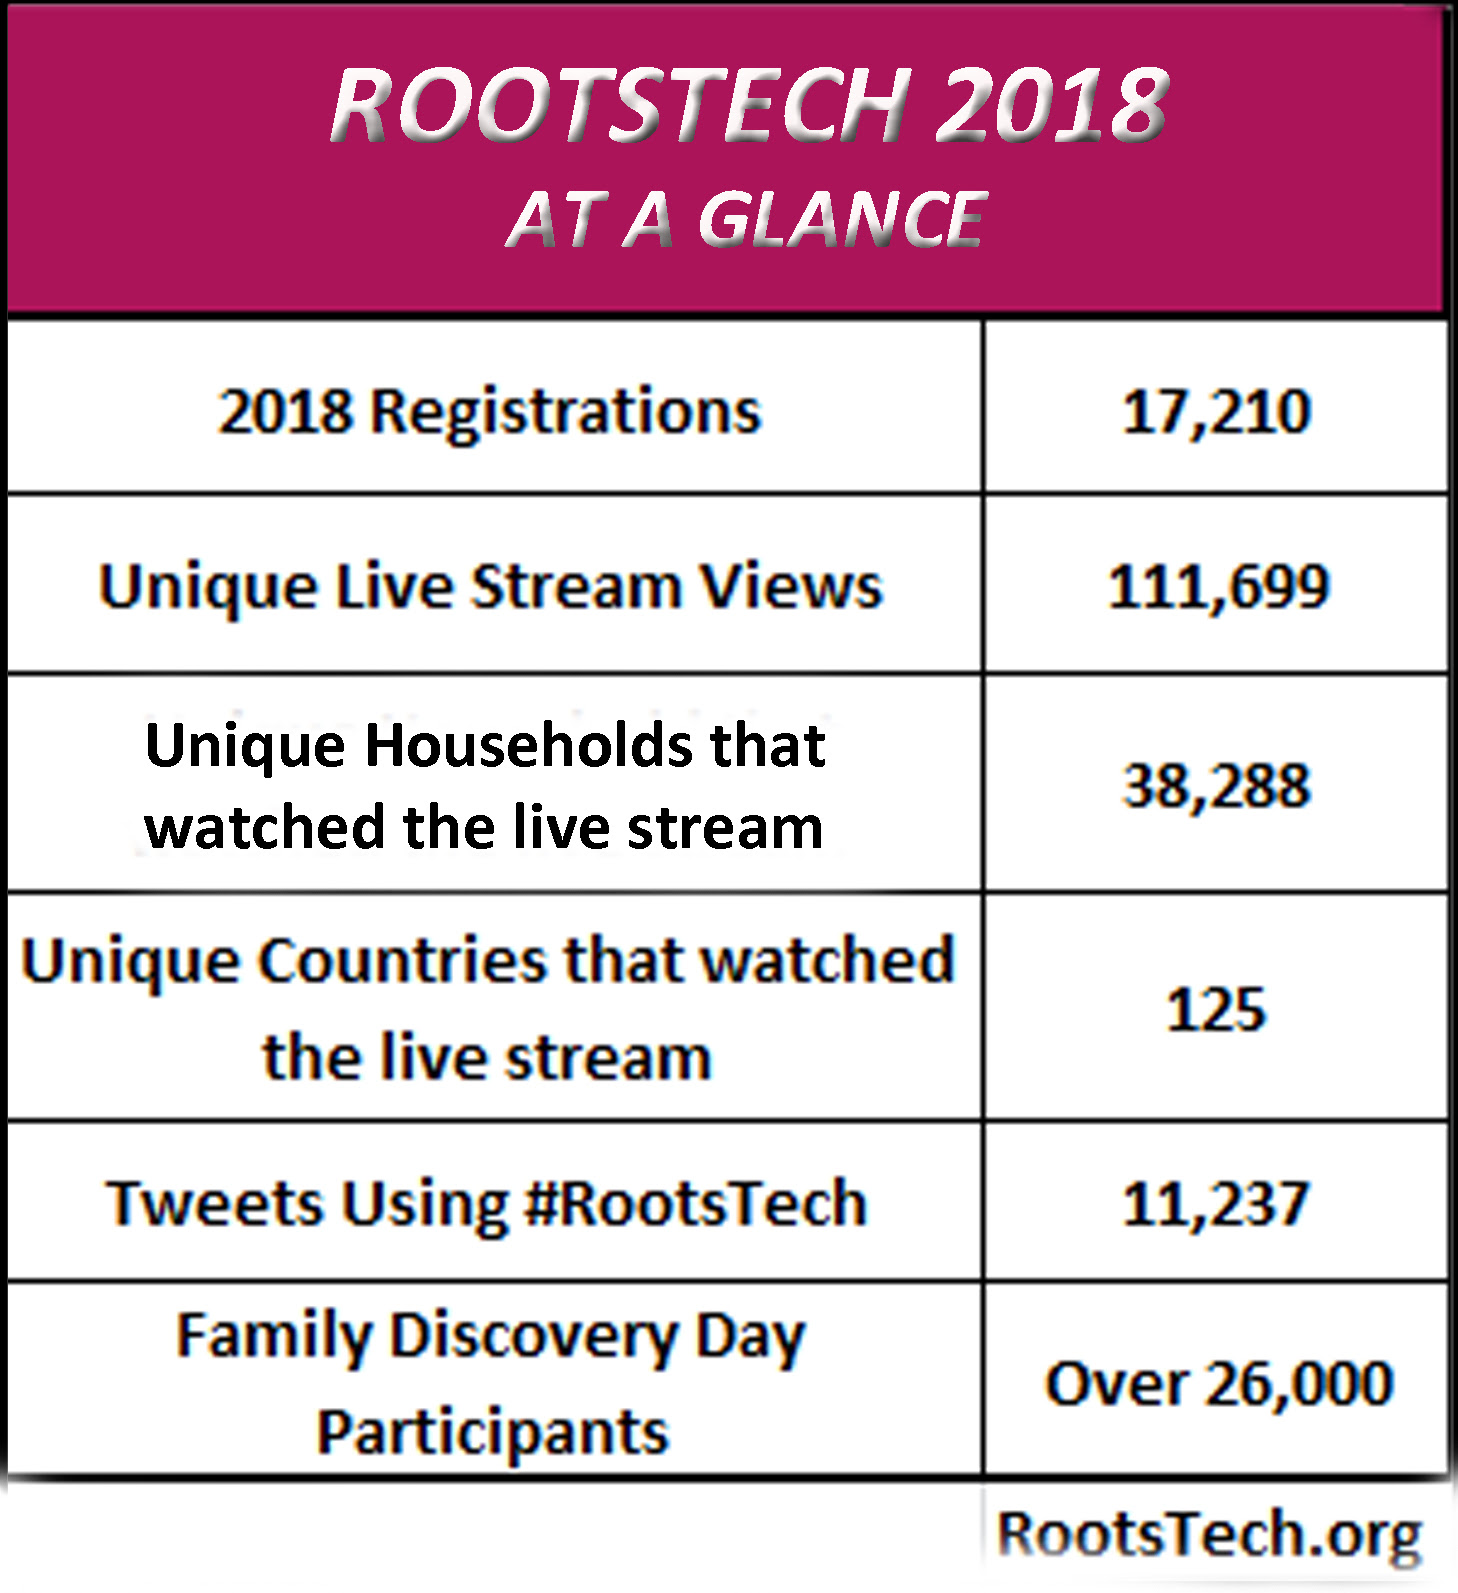 rootstech_2018_at_a_glance.jpg